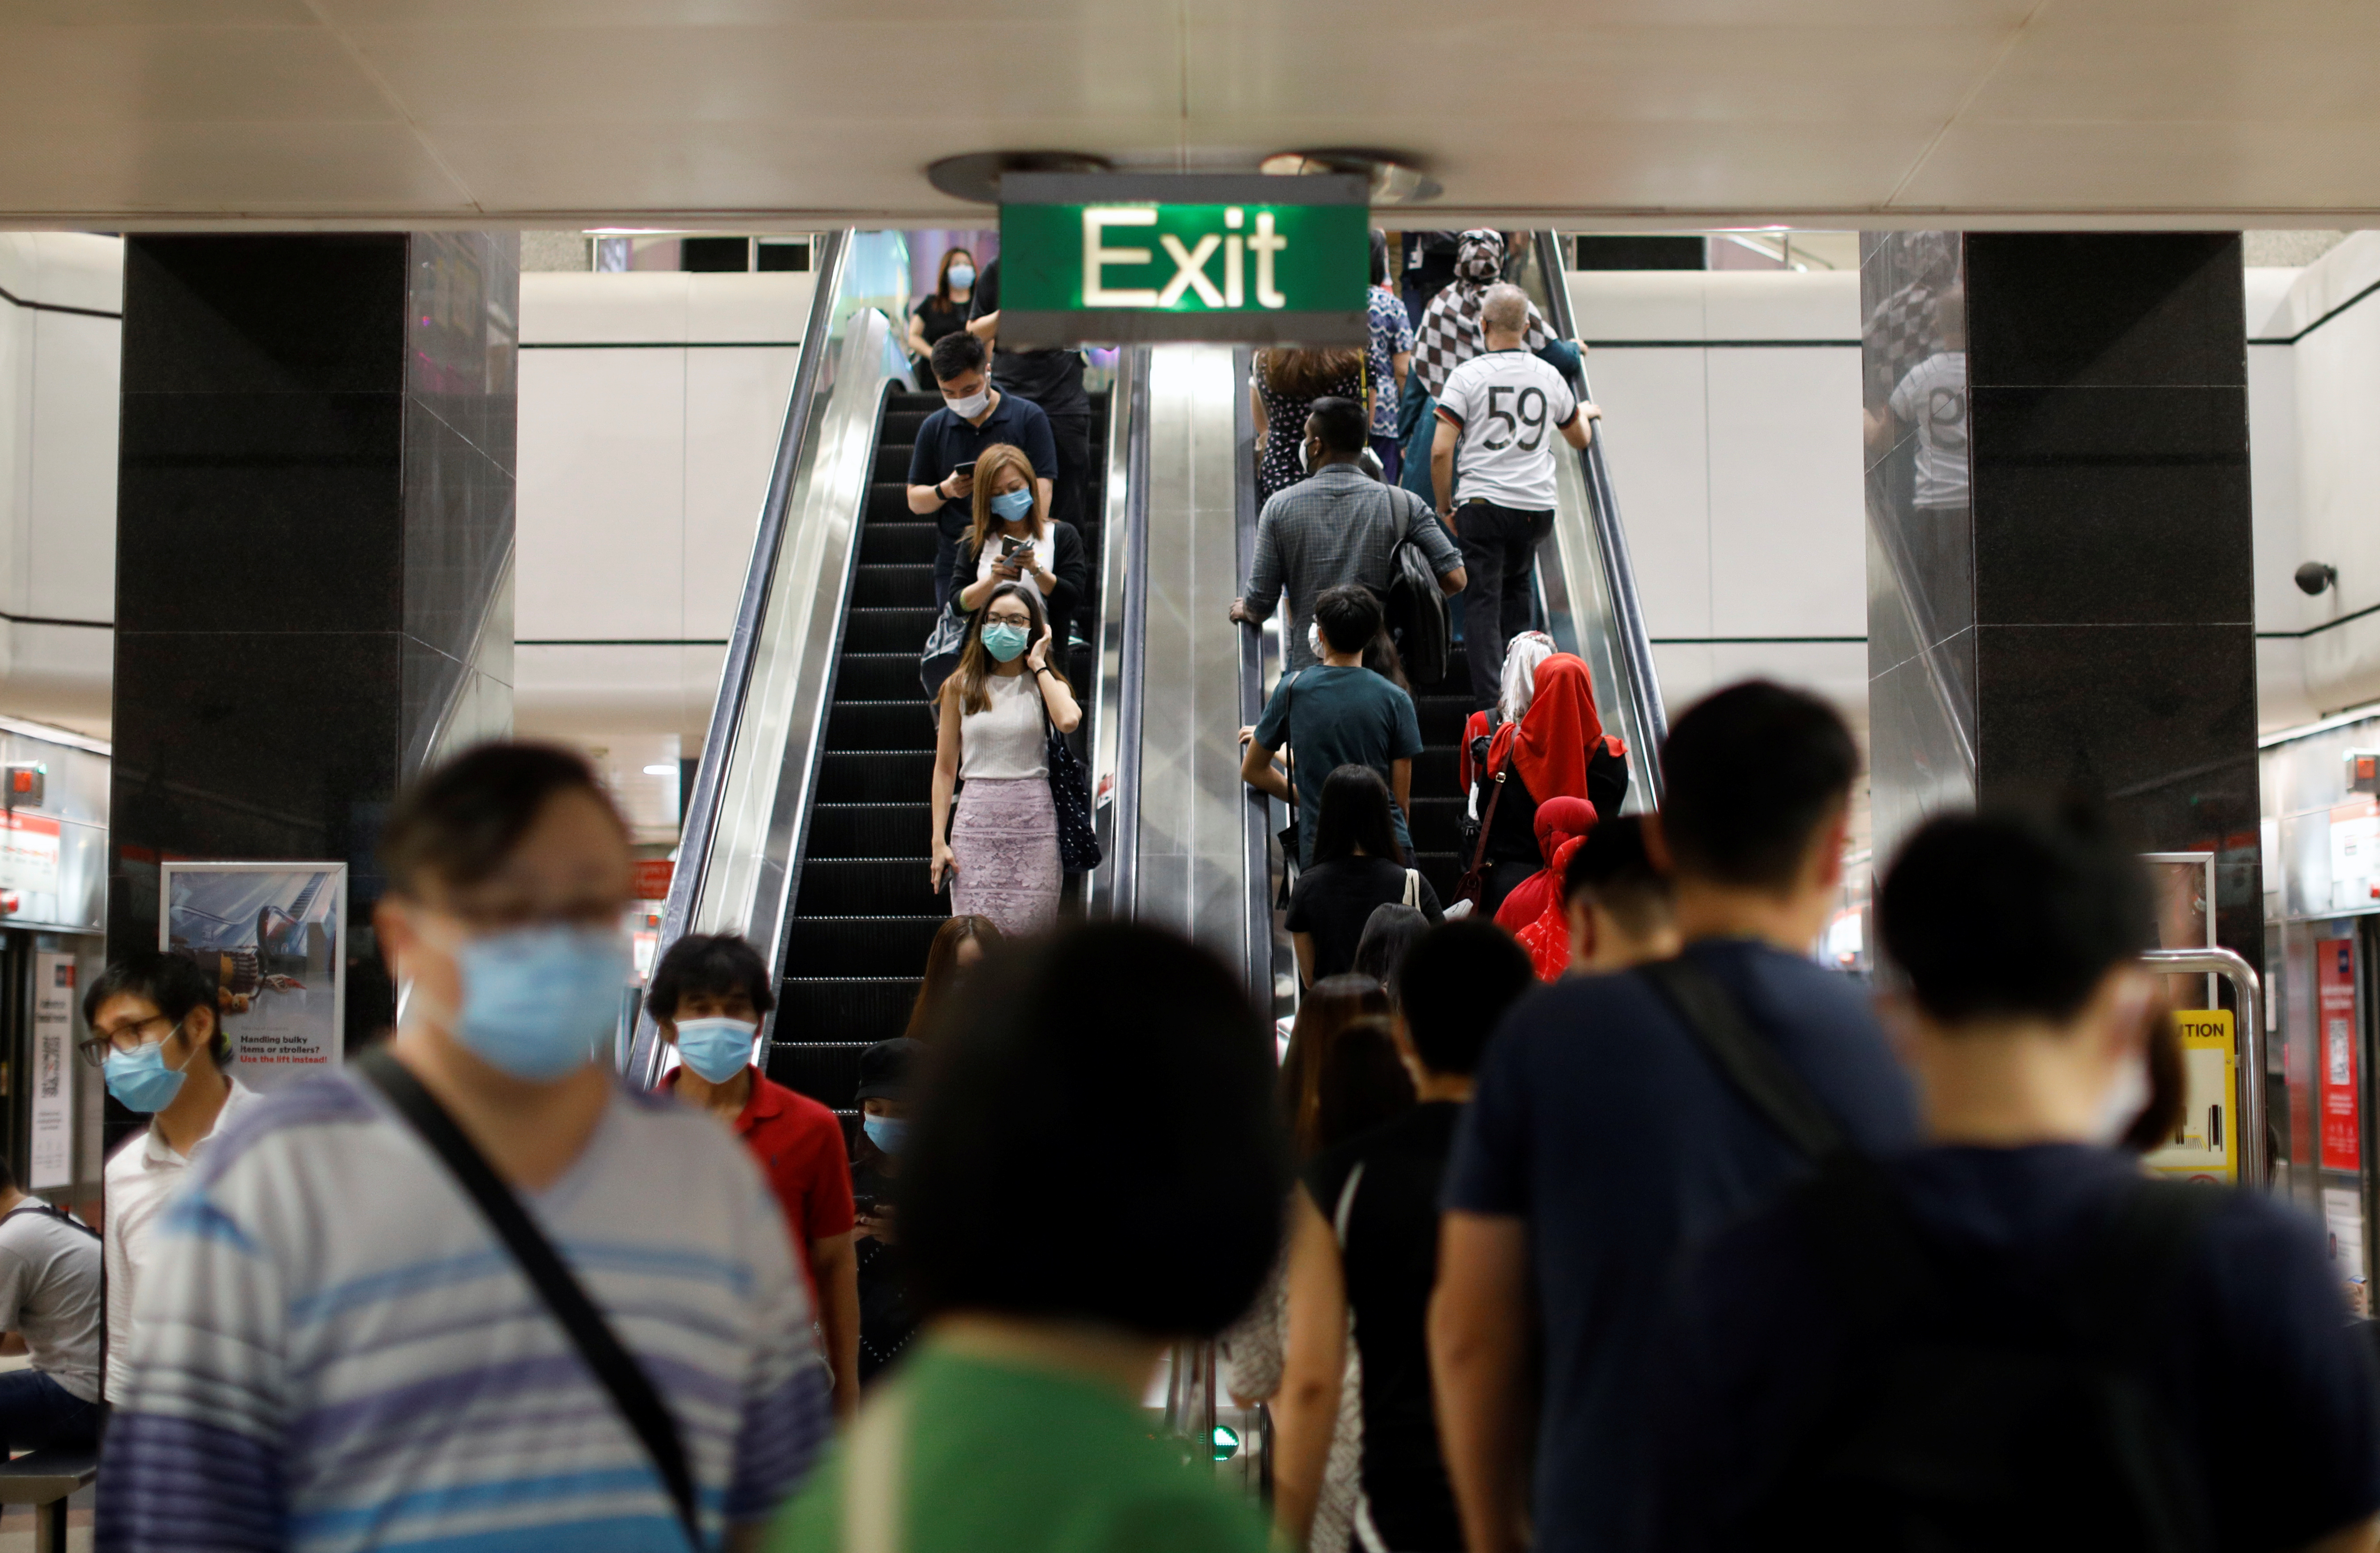 Commuters wearing protective face masks leave a train station during the coronavirus disease (COVID-19) outbreak in Singapore August 17, 2020.   REUTERS/Edgar Su